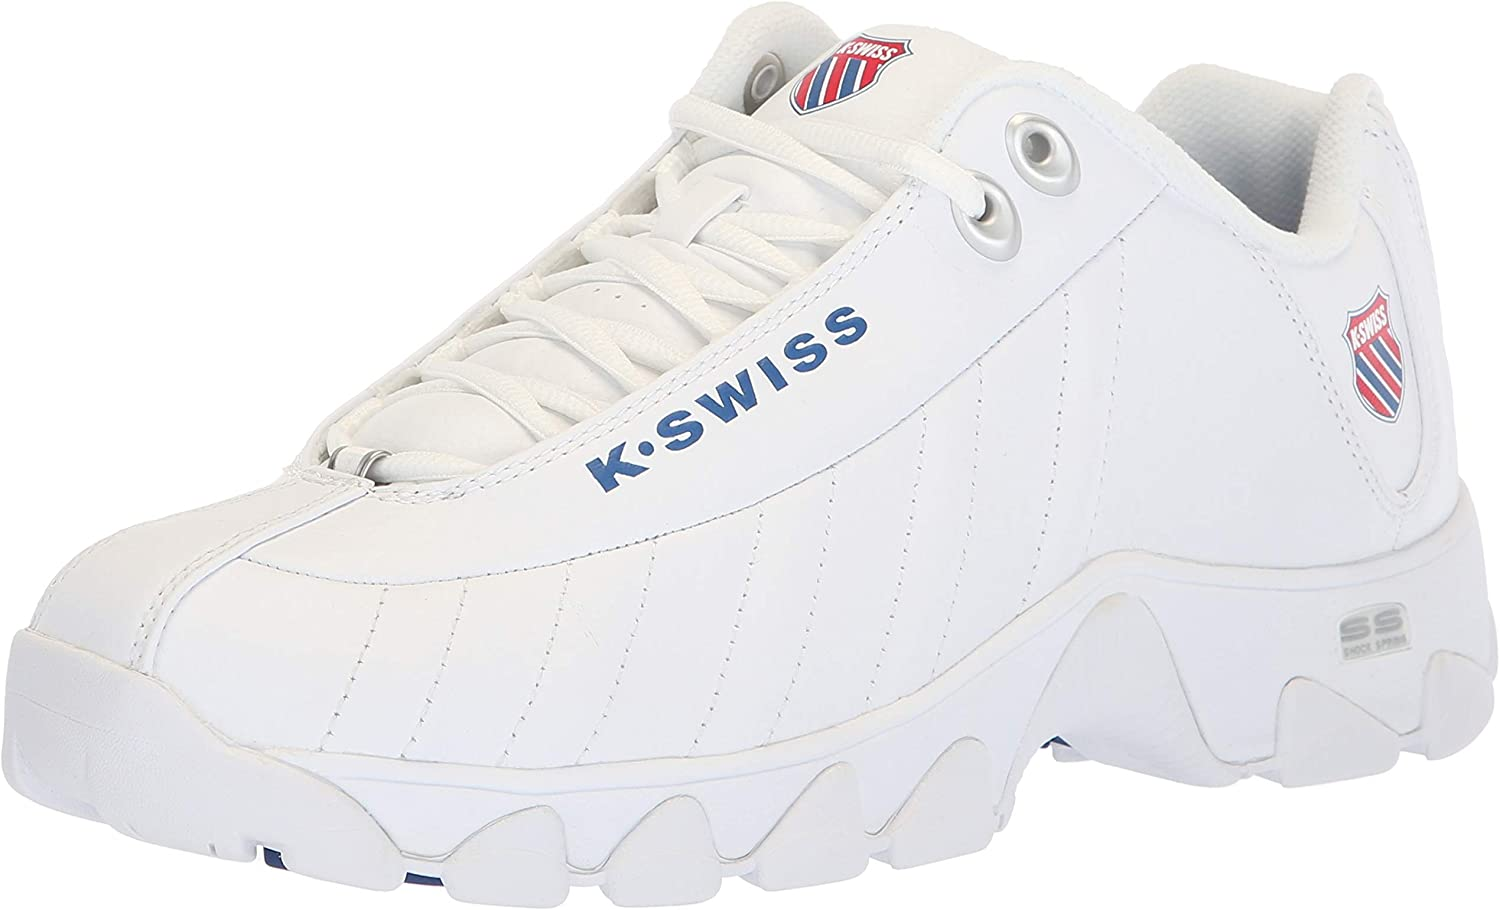 Retro Sneakers, Vintage Tennis Shoes K-Swiss Mens St329 Heritage Sneaker $49.99 AT vintagedancer.com